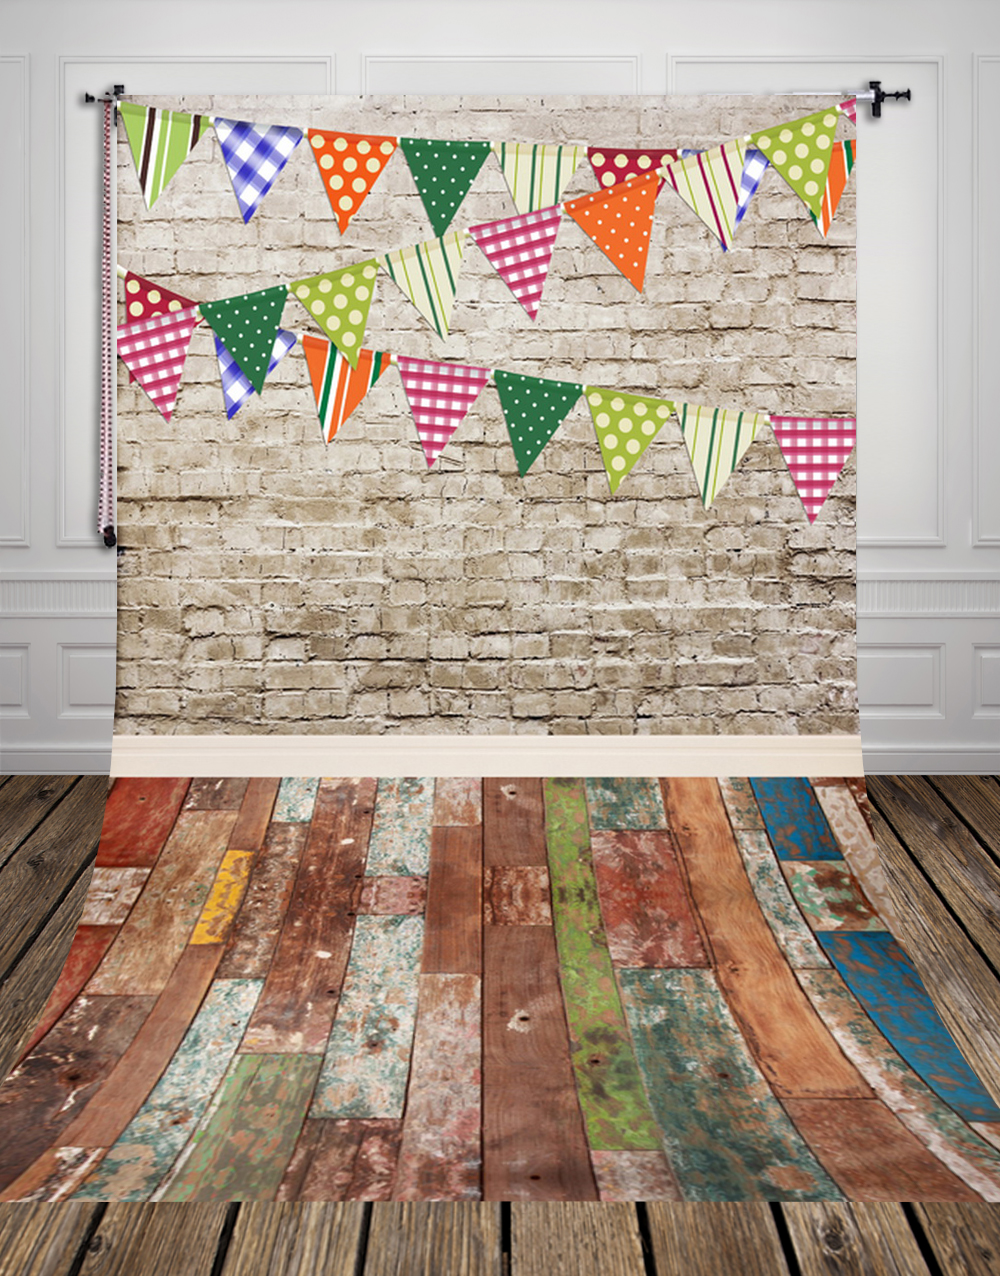 5x10ft(1.5x3m) white brickwall and colorized bunting photo studio background backdrop made of  Art fabric for photography D-9697<br>